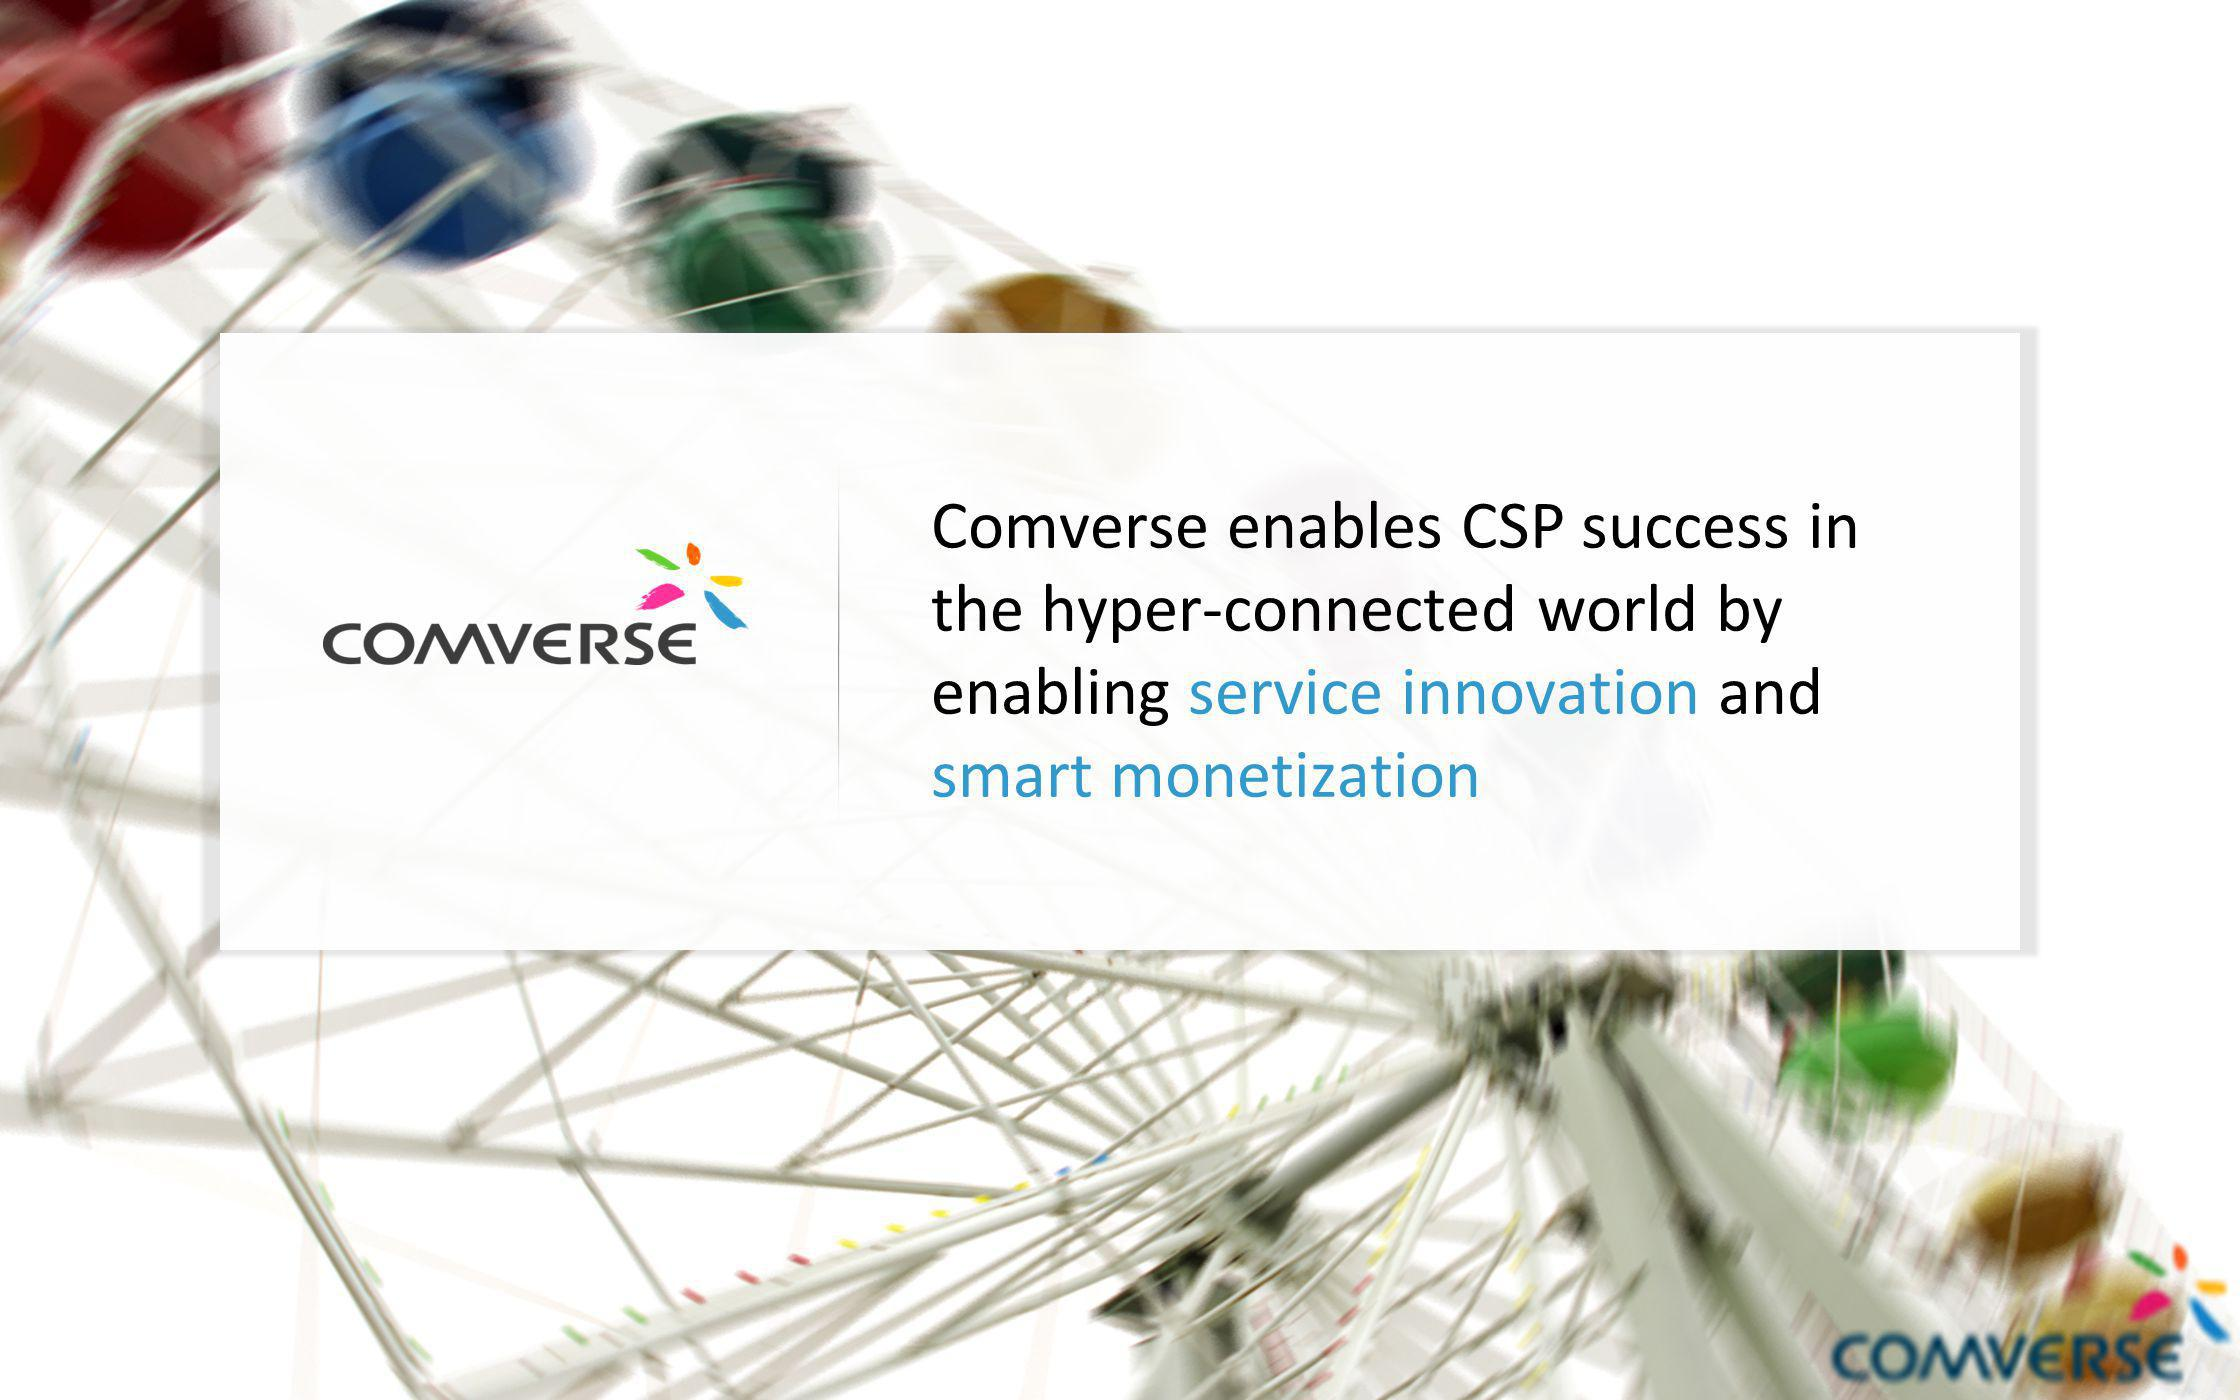 2 Comverse enables CSP success in the hyper-connected world by enabling service innovation and smart monetization